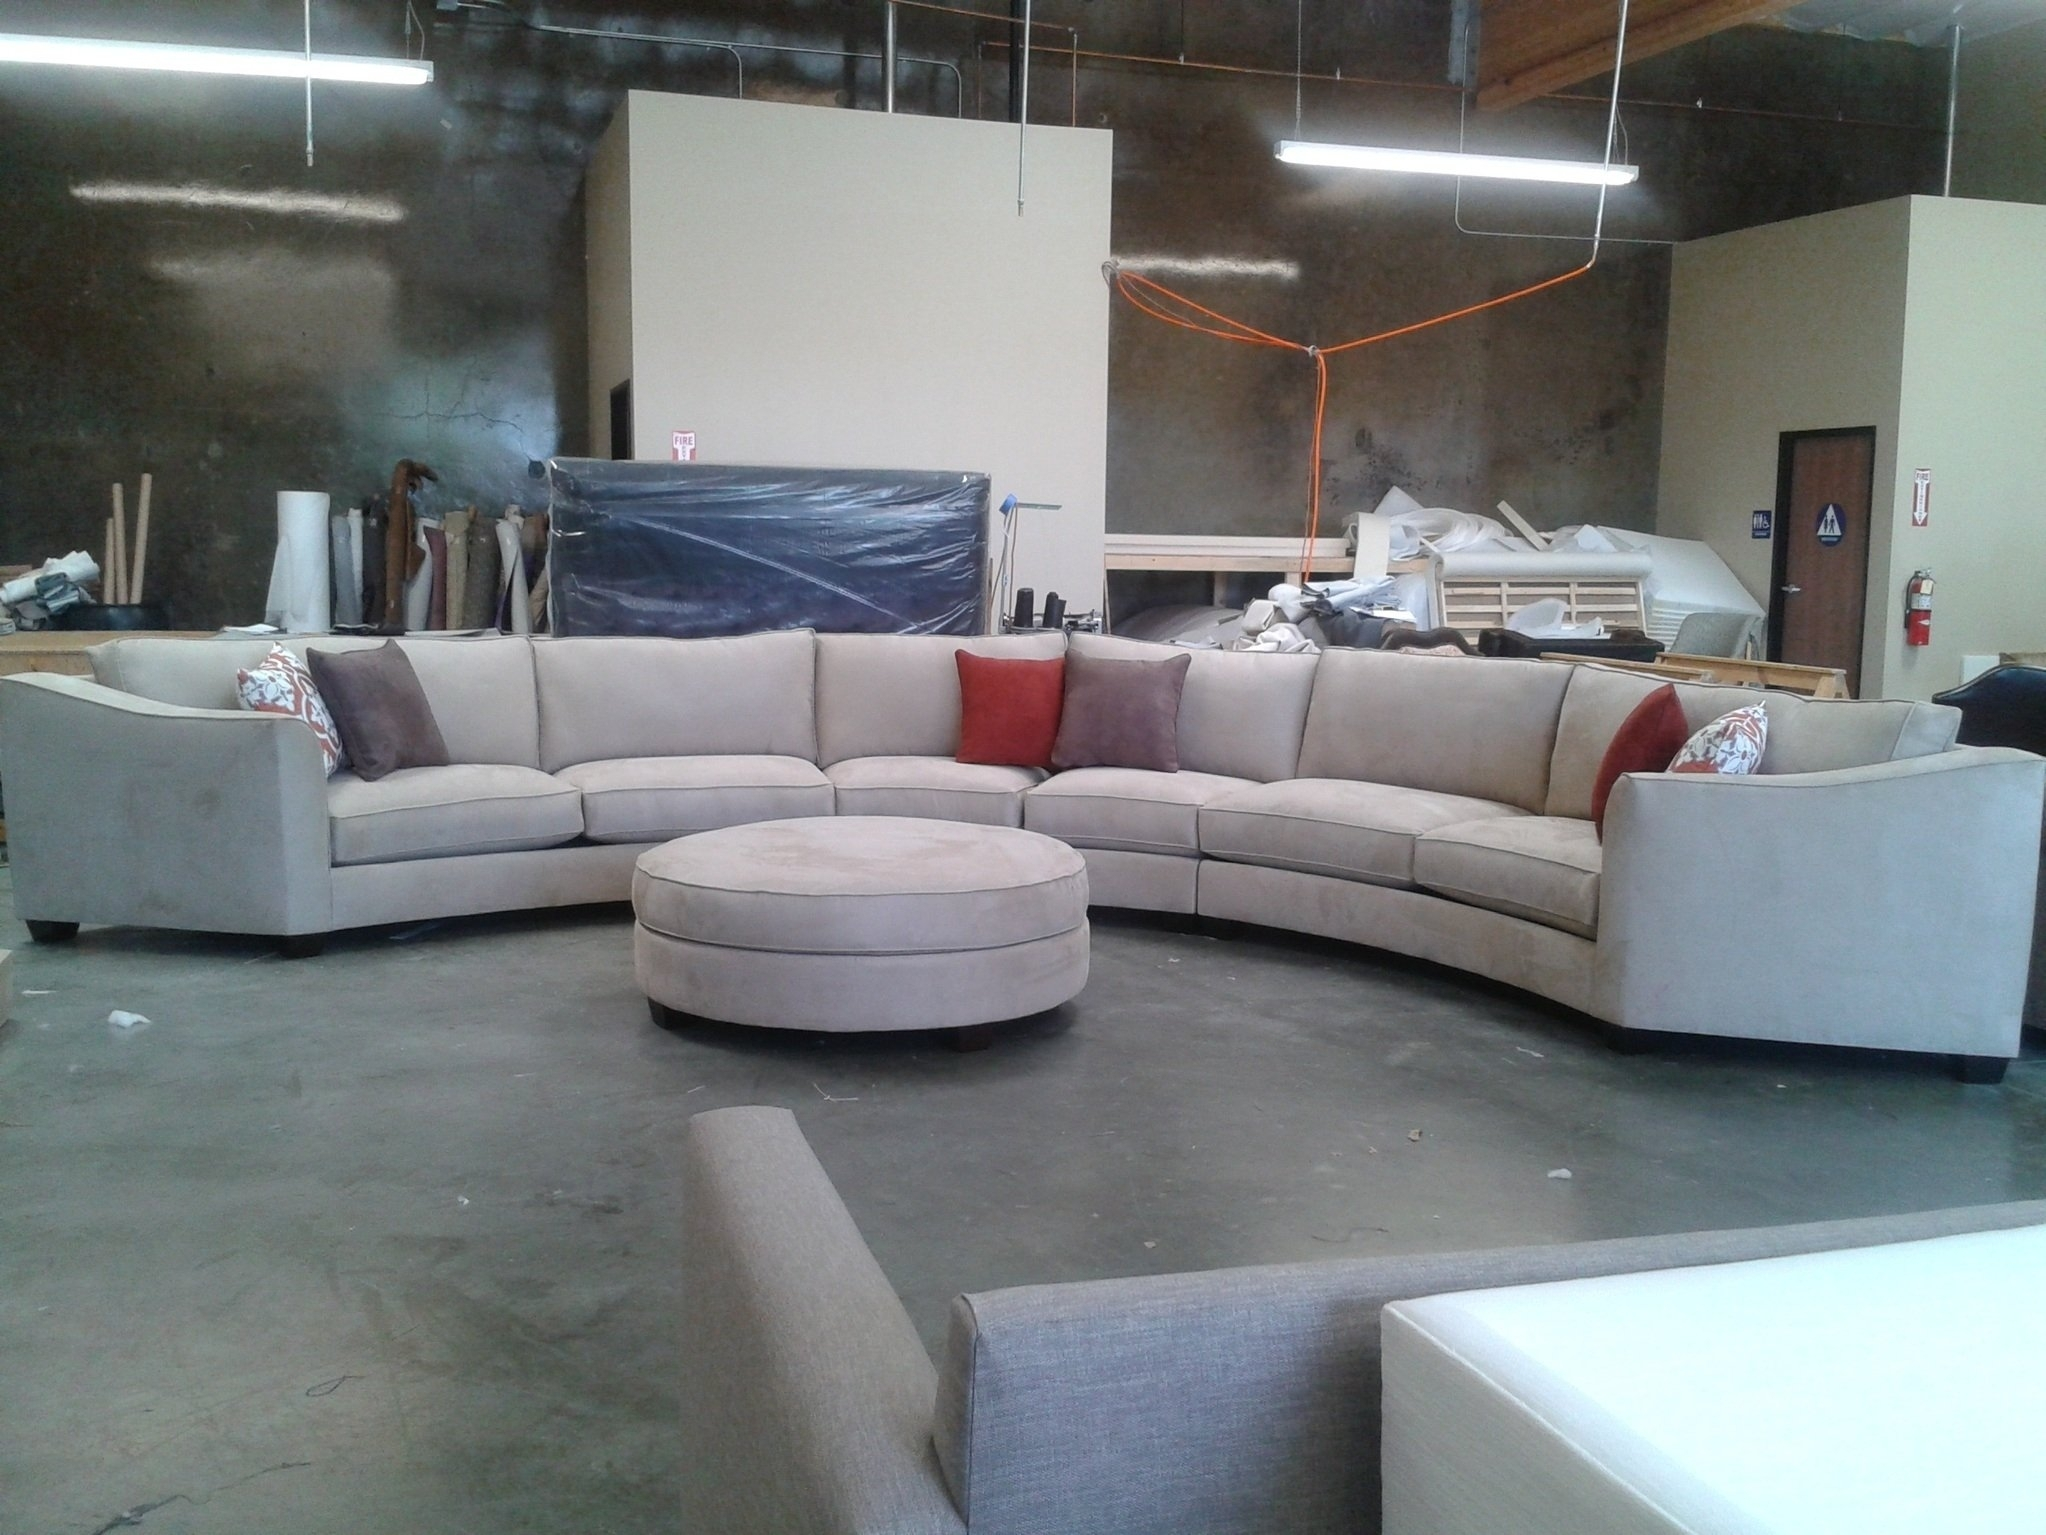 Curved Sectional Sofa Set Rich Comfortable Upholstered Fabric In Throughout Circular Sectional Sofas (View 6 of 10)